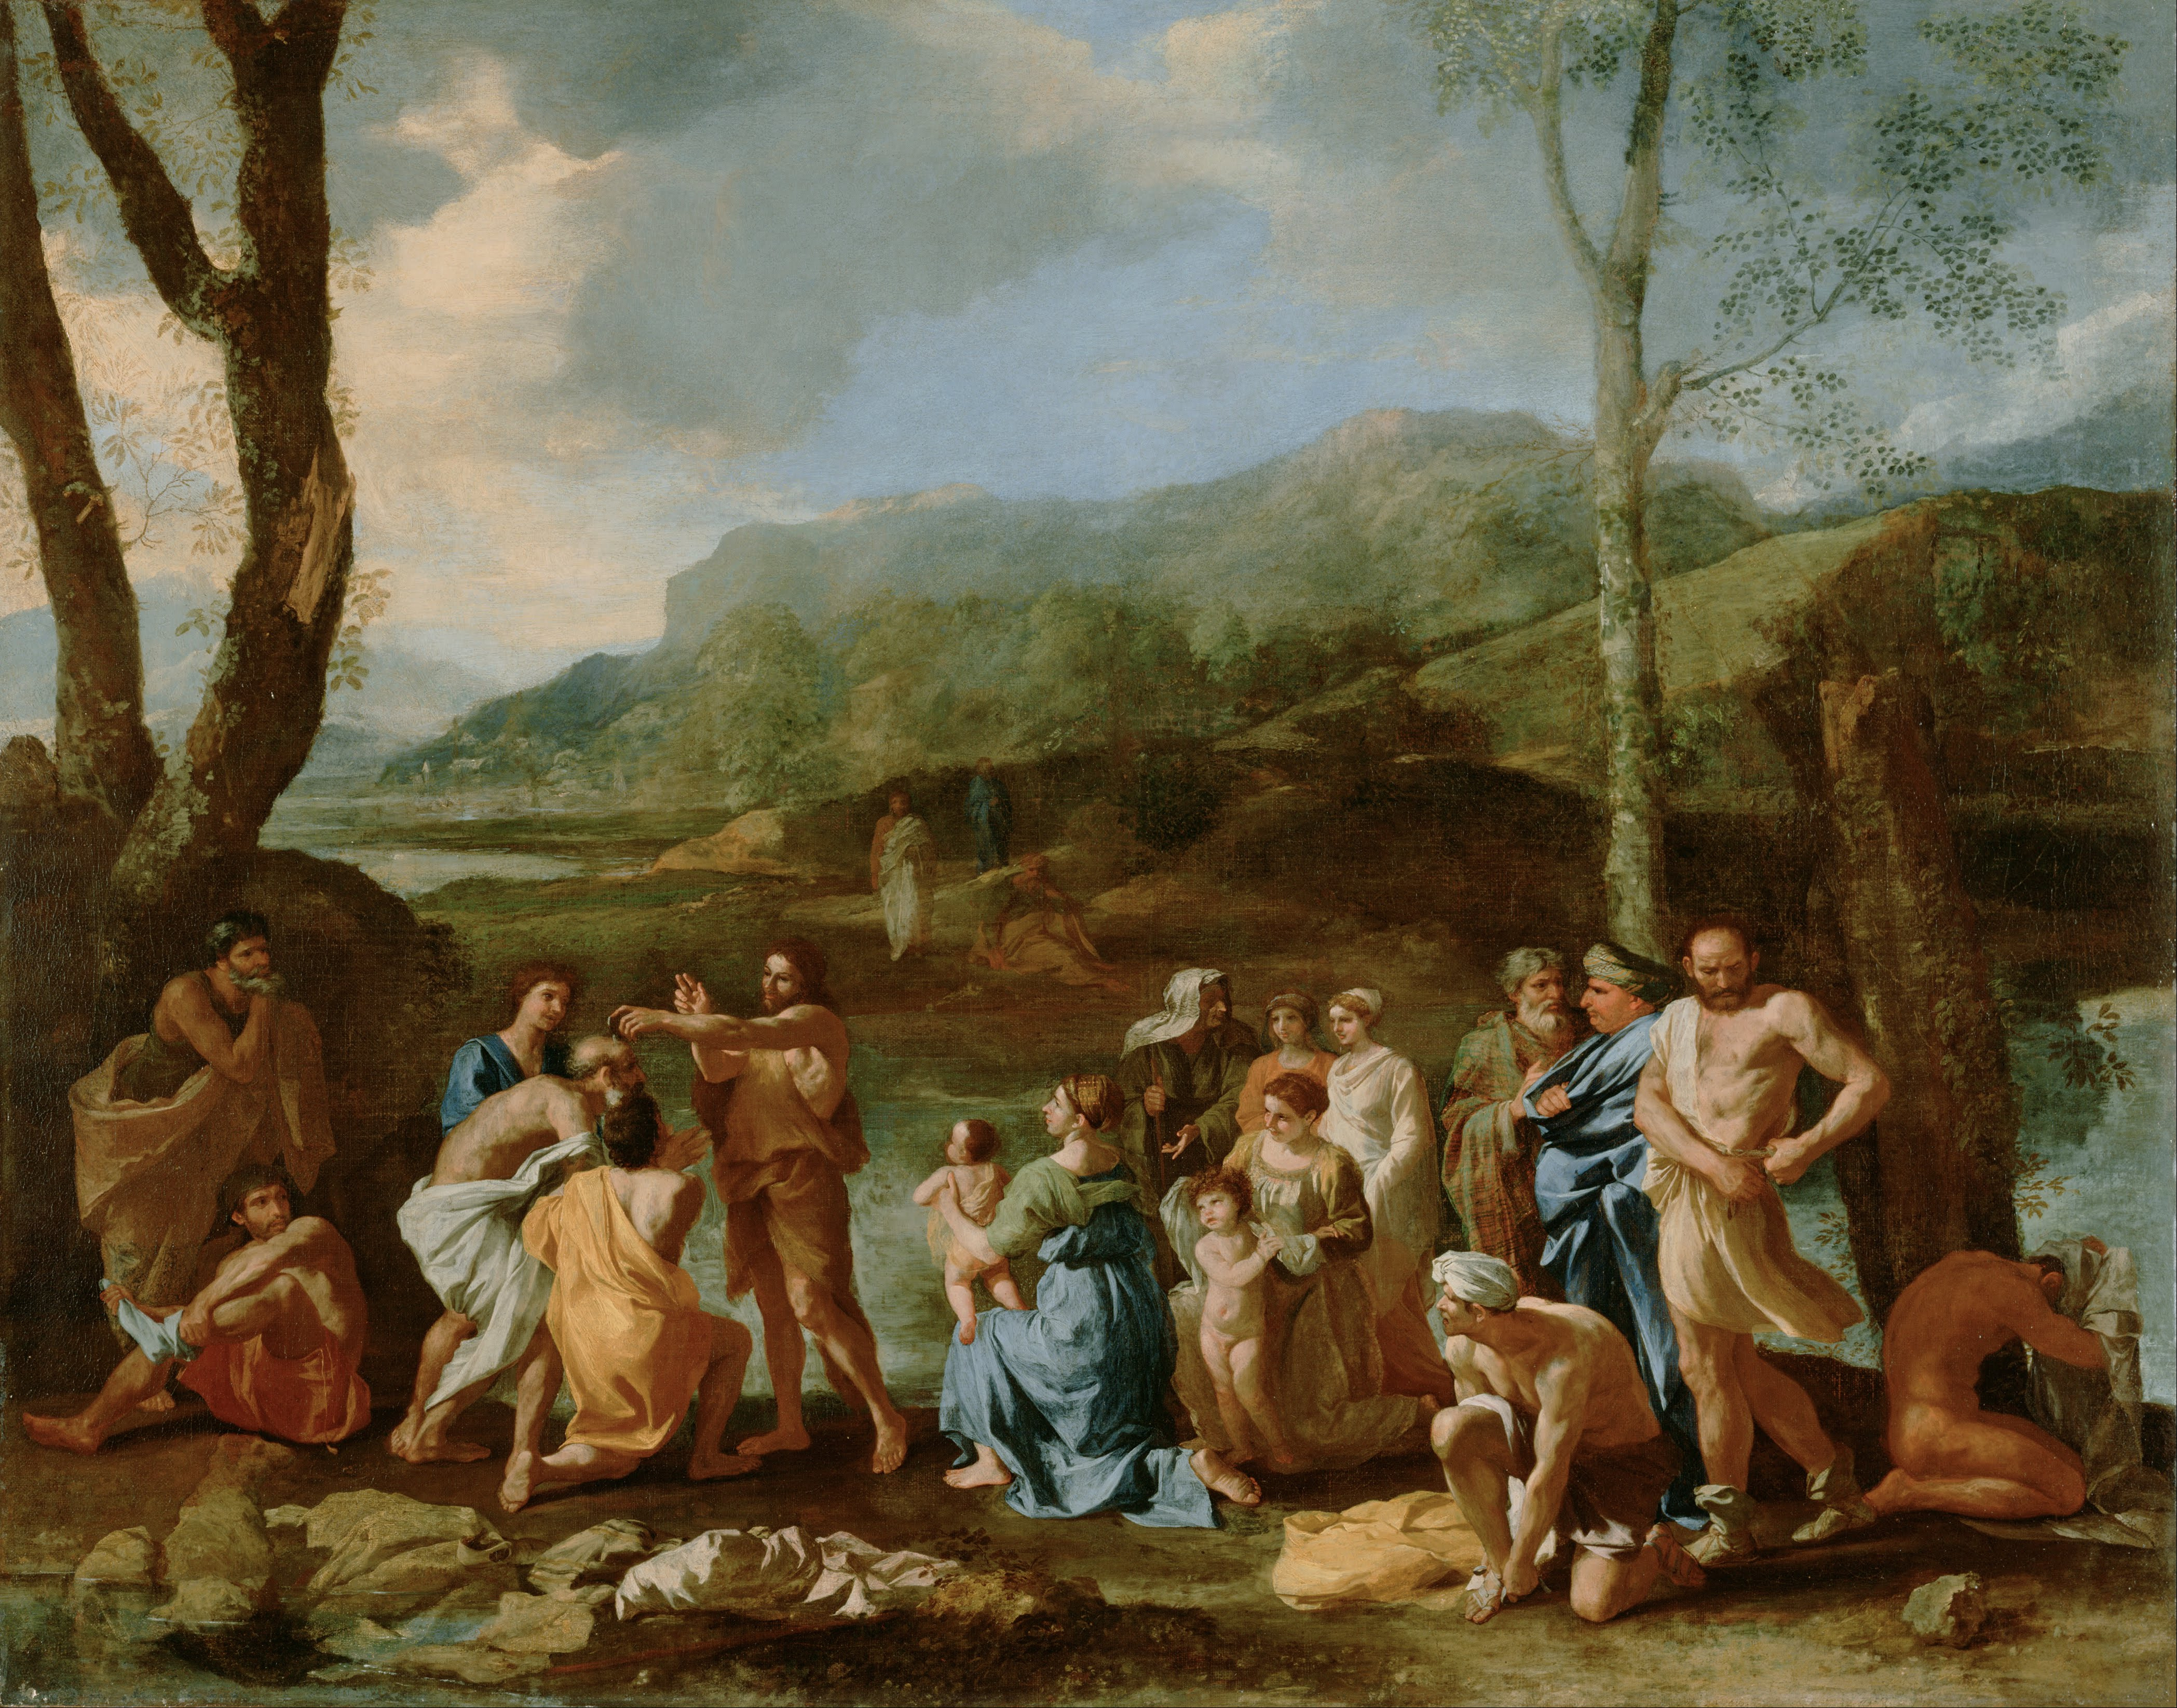 John the baptist, Bible verses about baptism